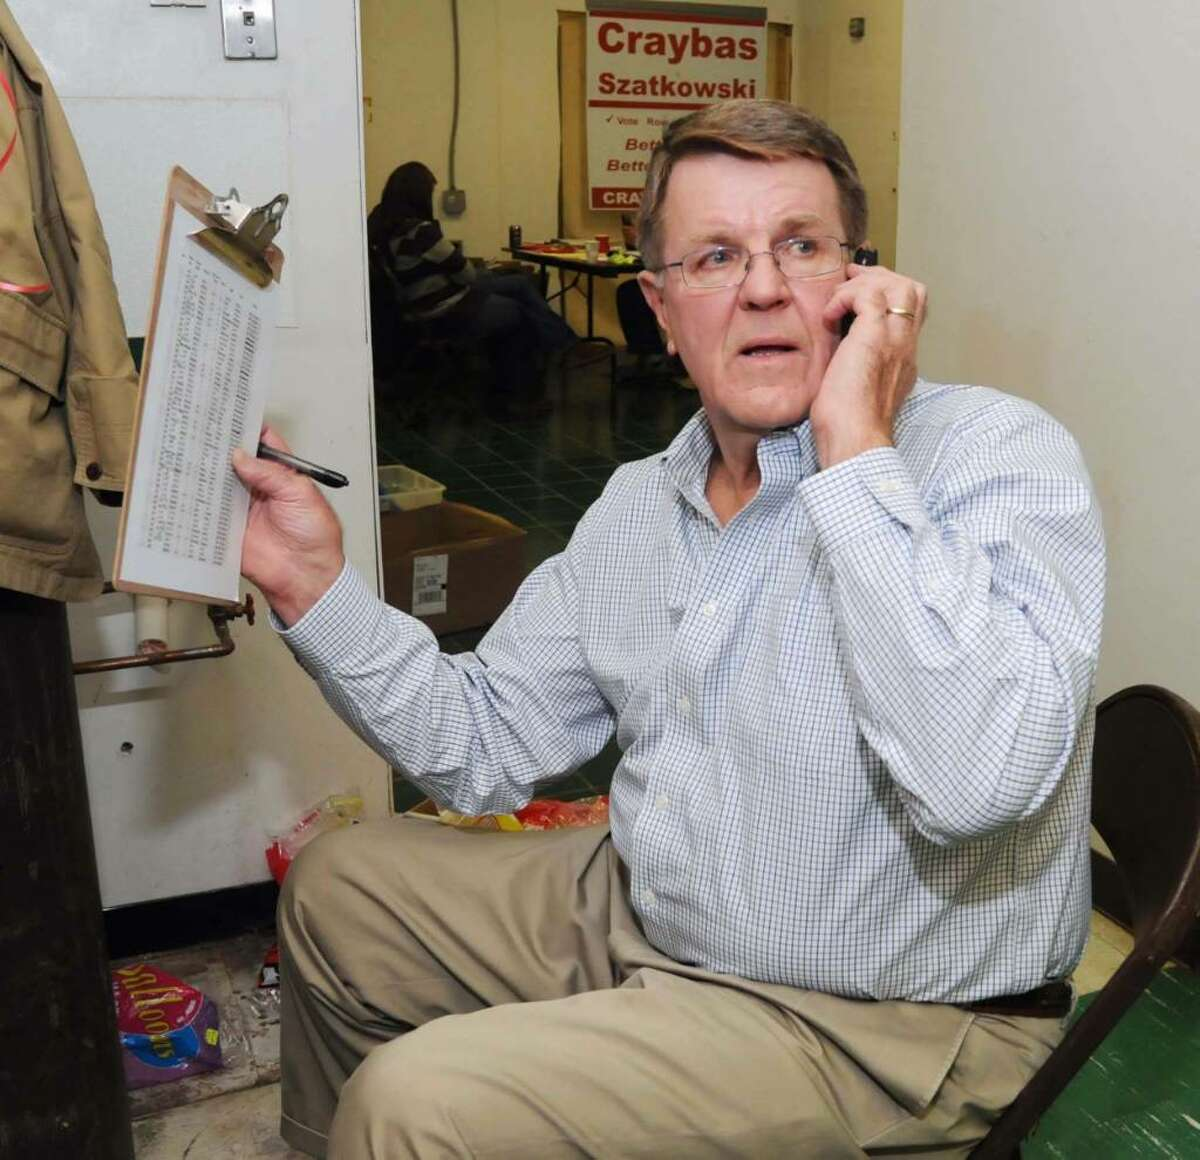 Bethel's Republican candidate for First Selectman, Larry Craybas, continues to make calls at the Republican Headquarters on election night, Tuesday, Nov. 3, 2009.